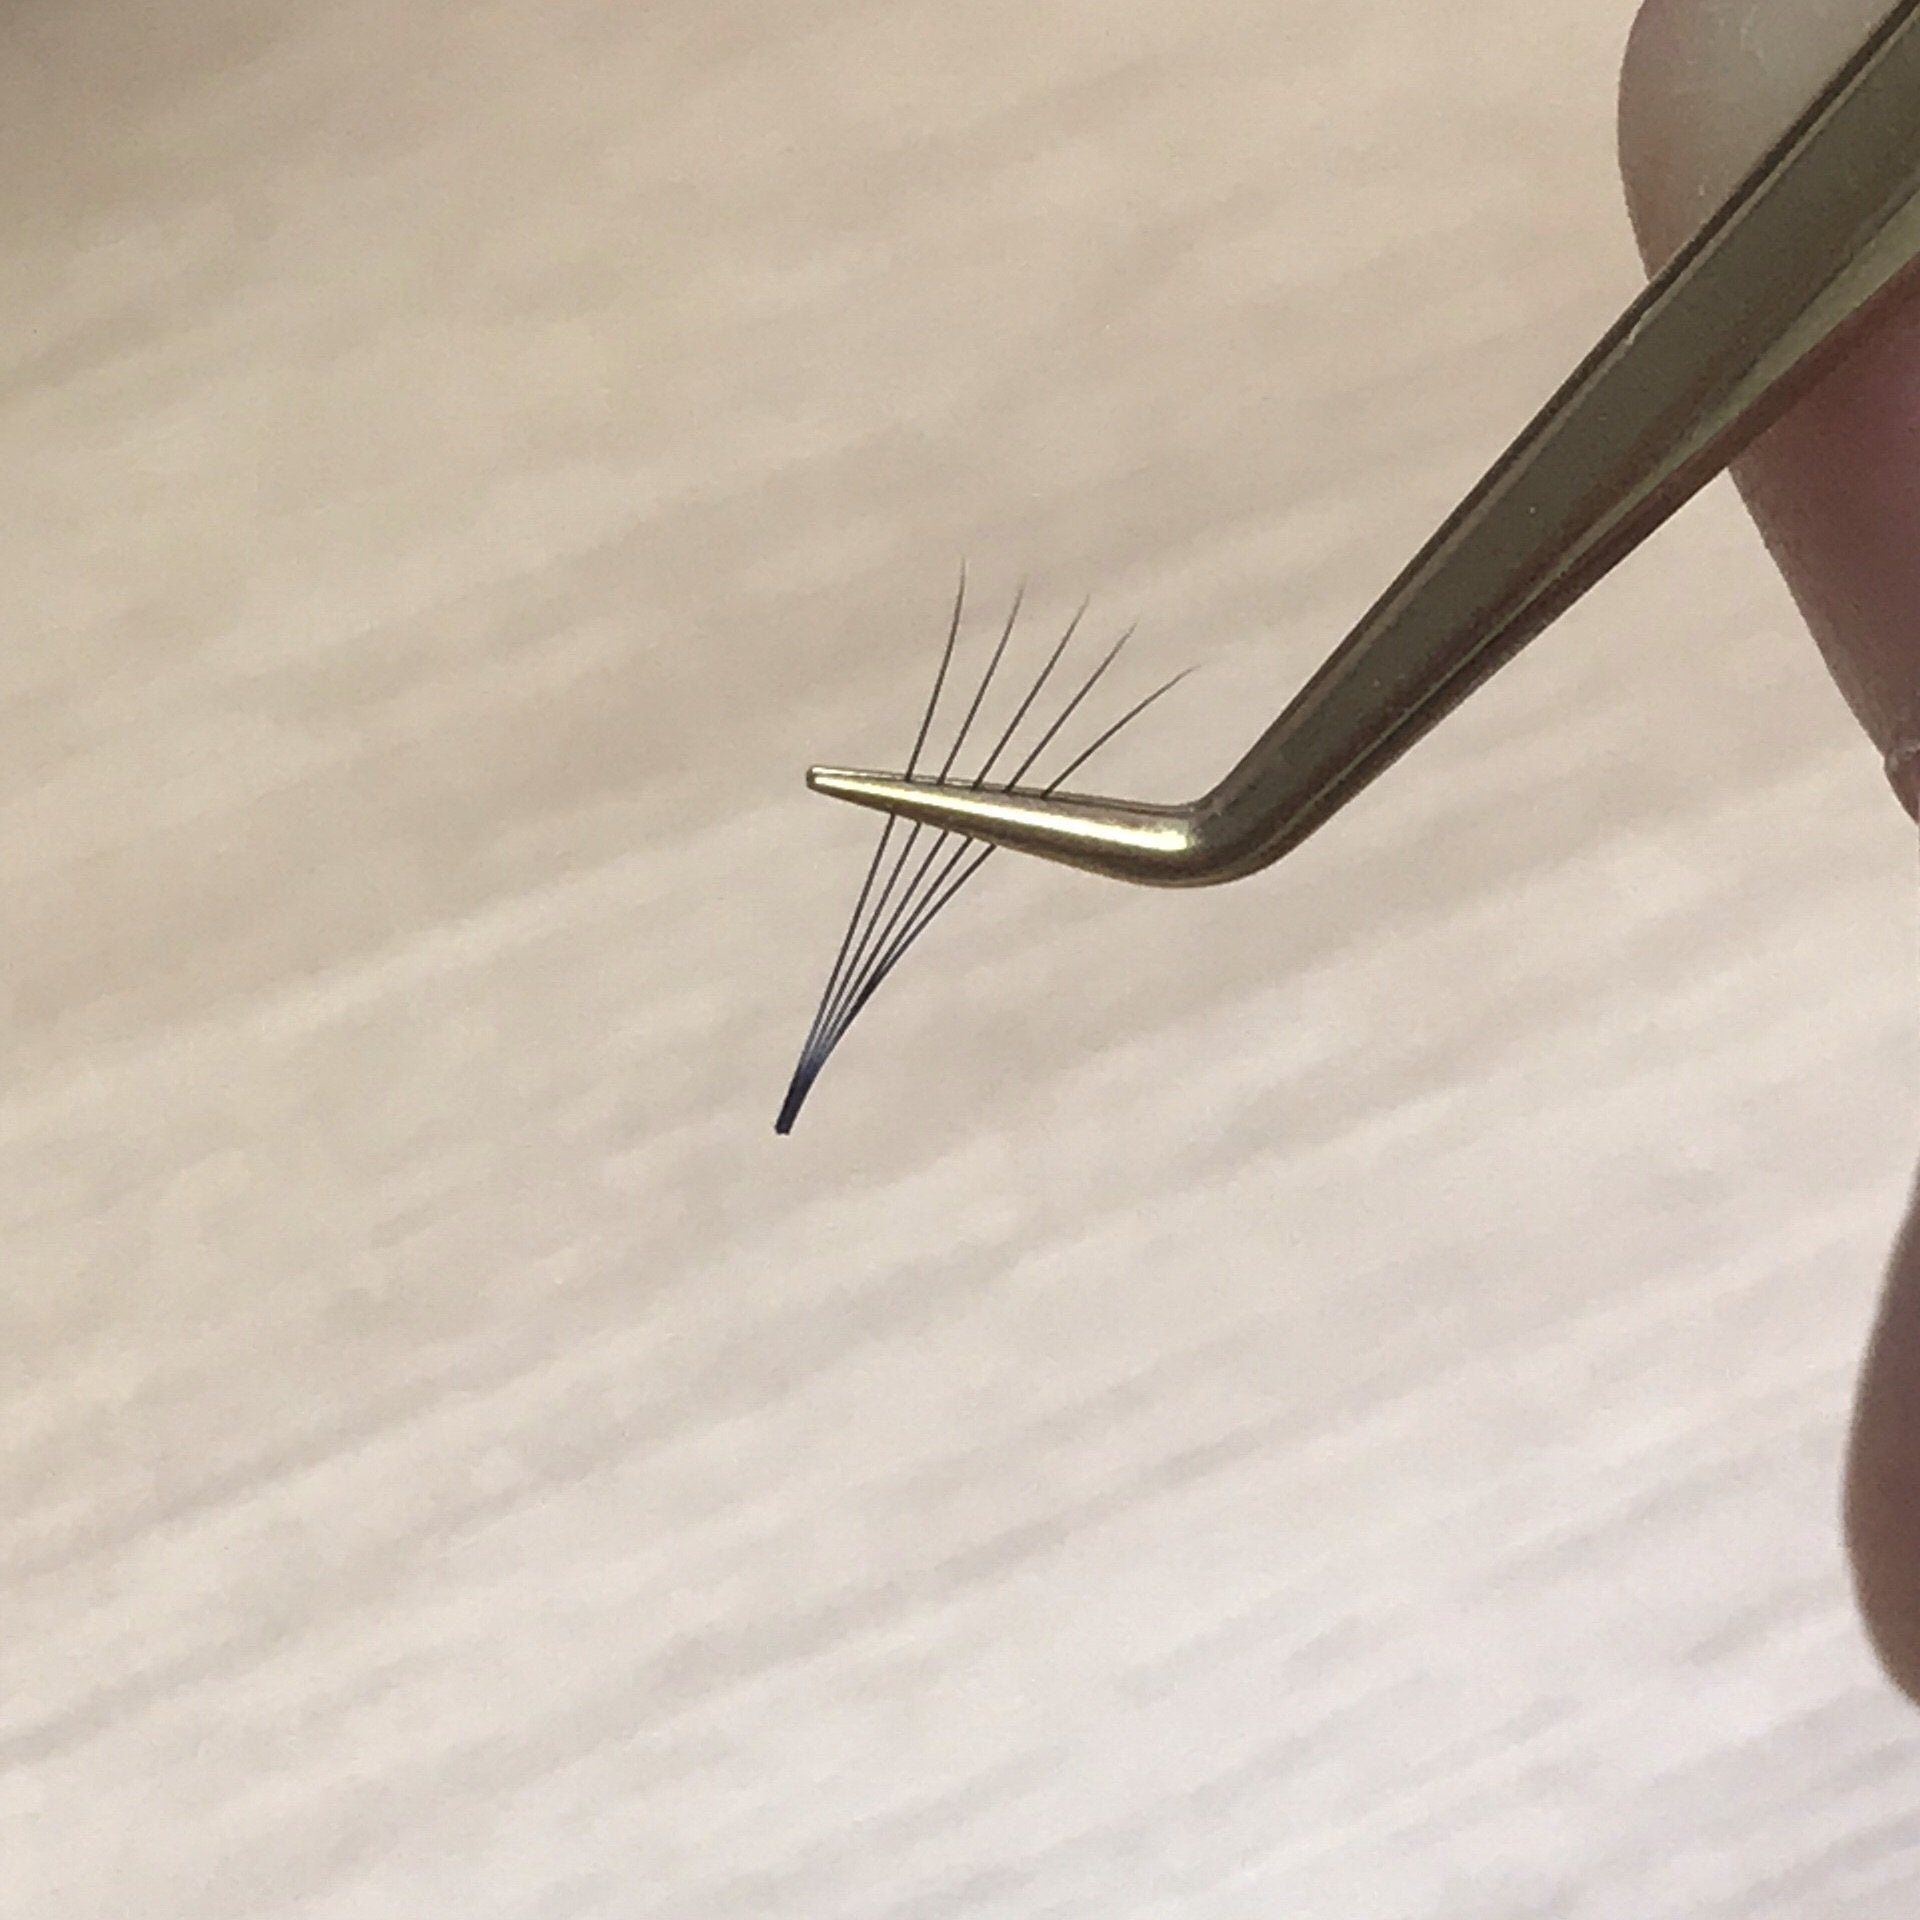 75 degree Tip Volume Tweezers